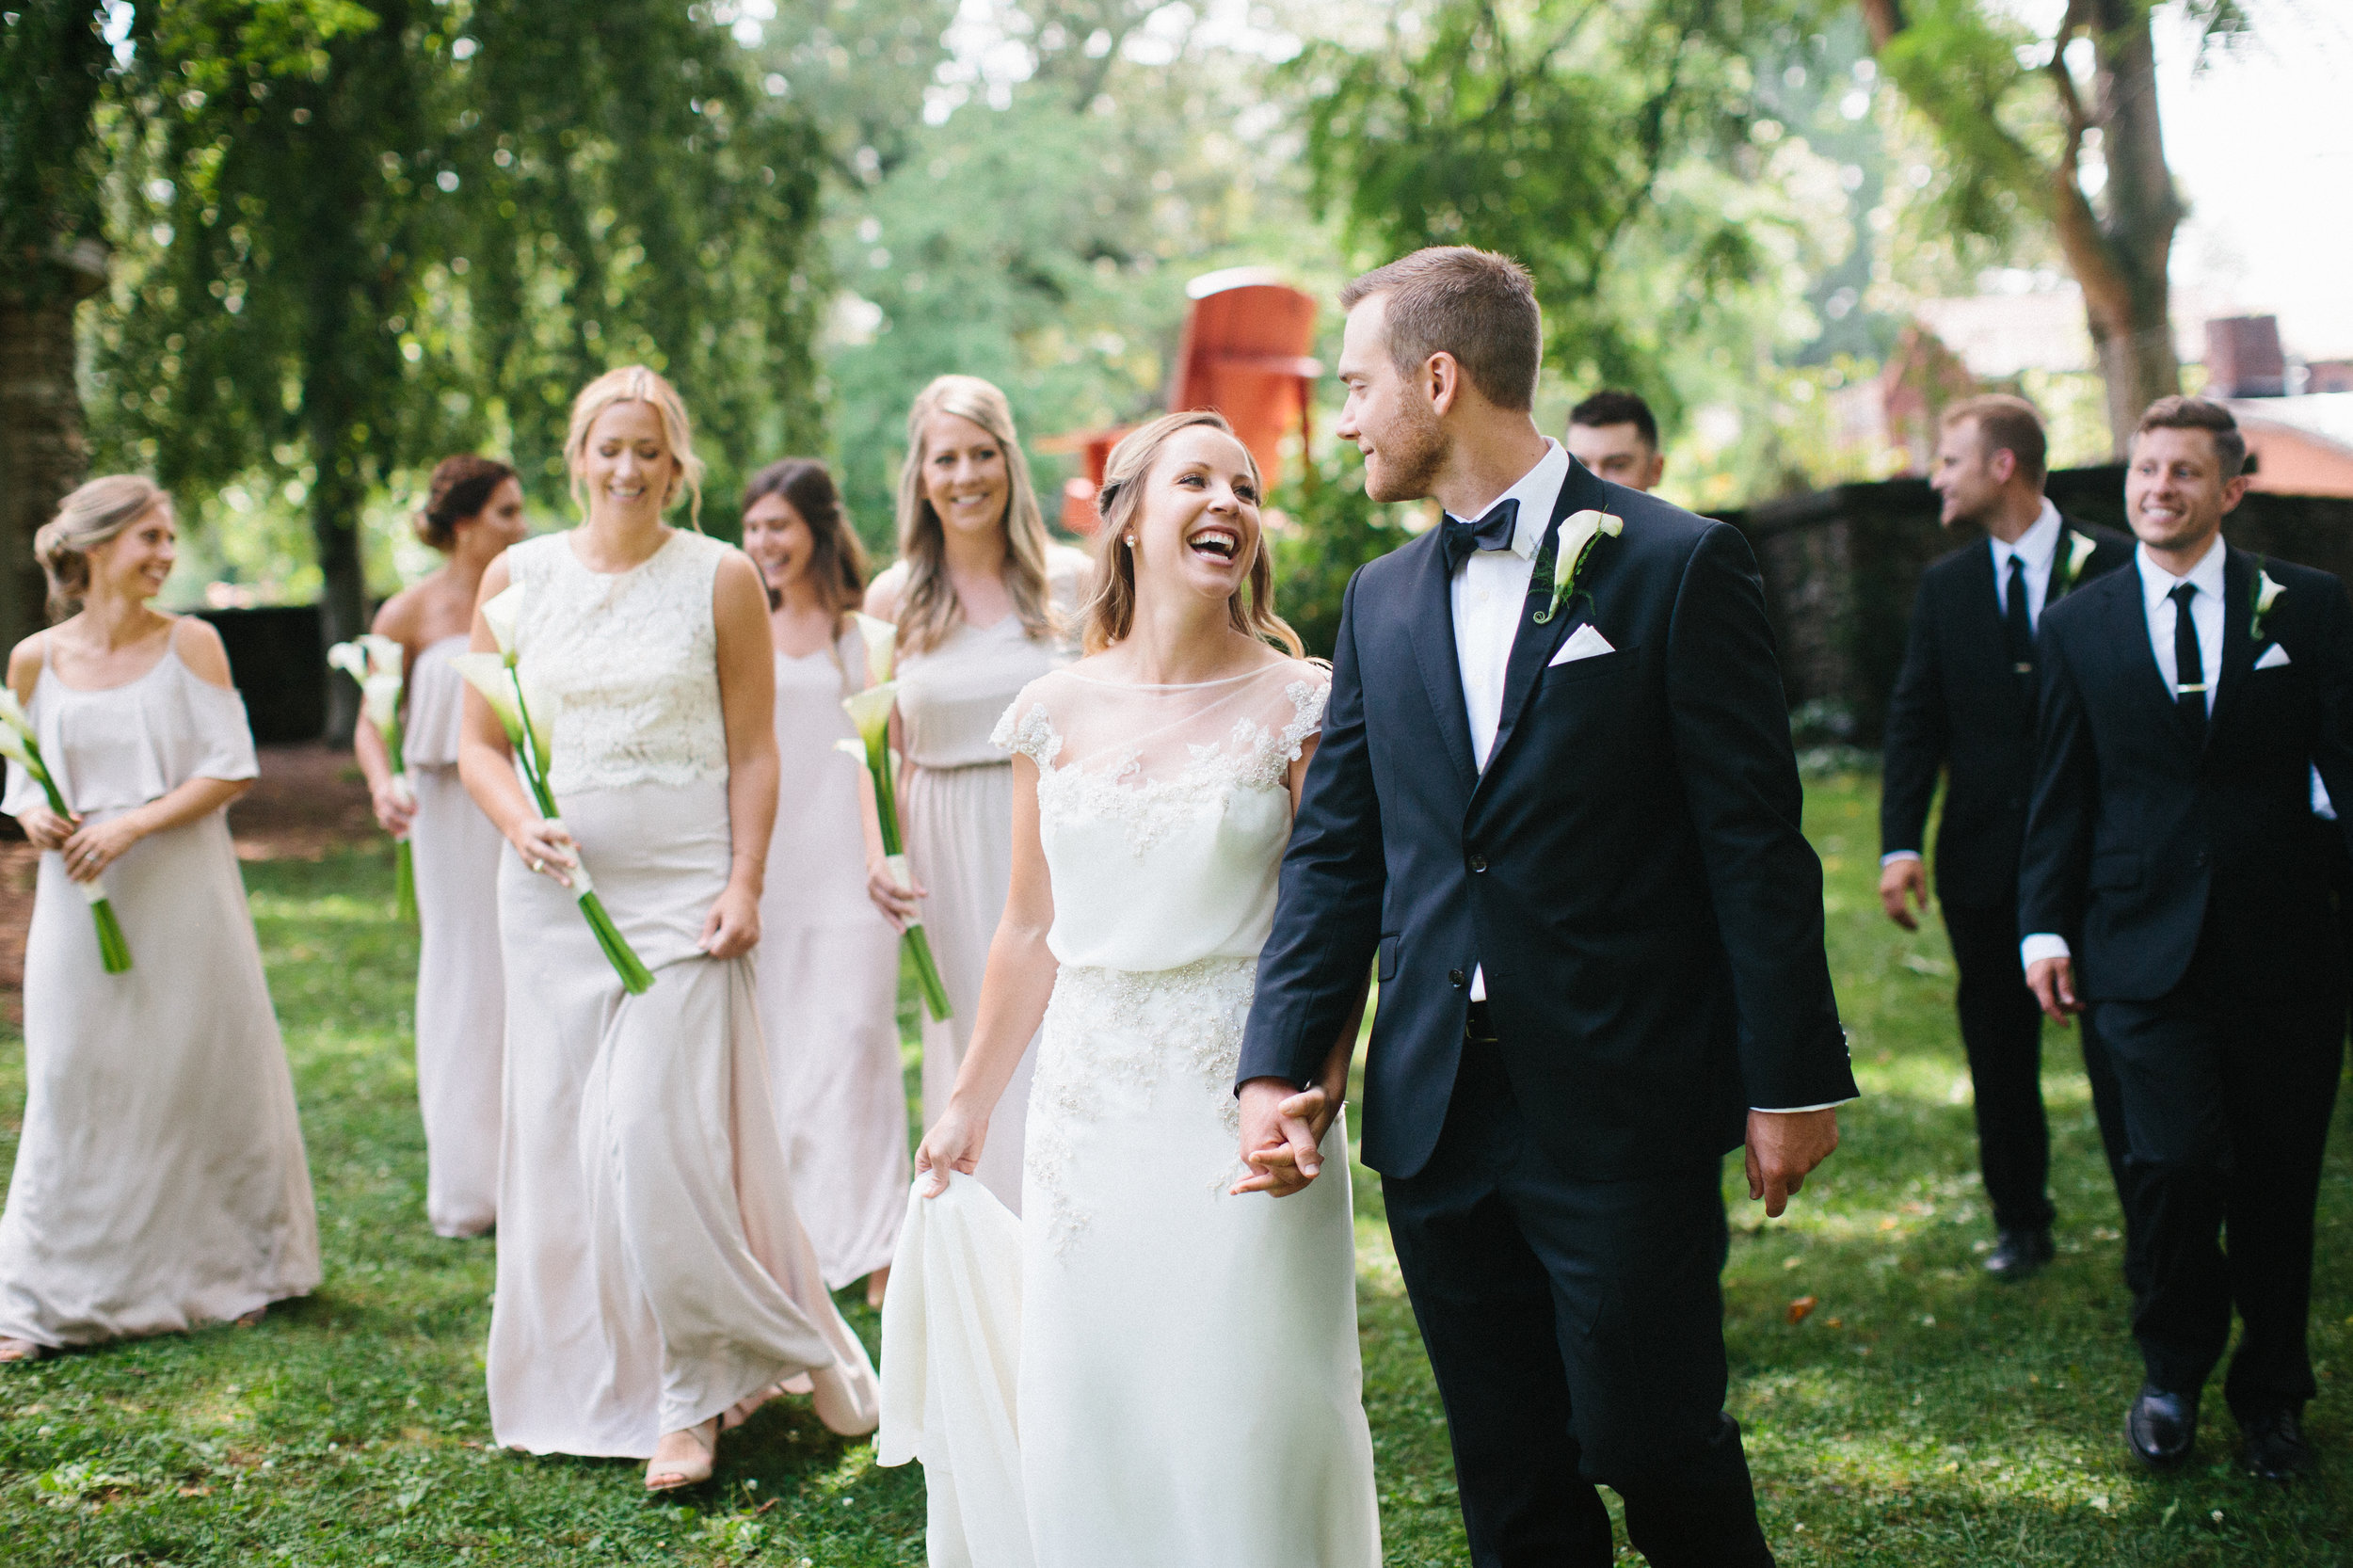 Katie_Matt_Wedding_Knoxville_Botanical_Garden_Abigail_Malone_photography-134.jpg